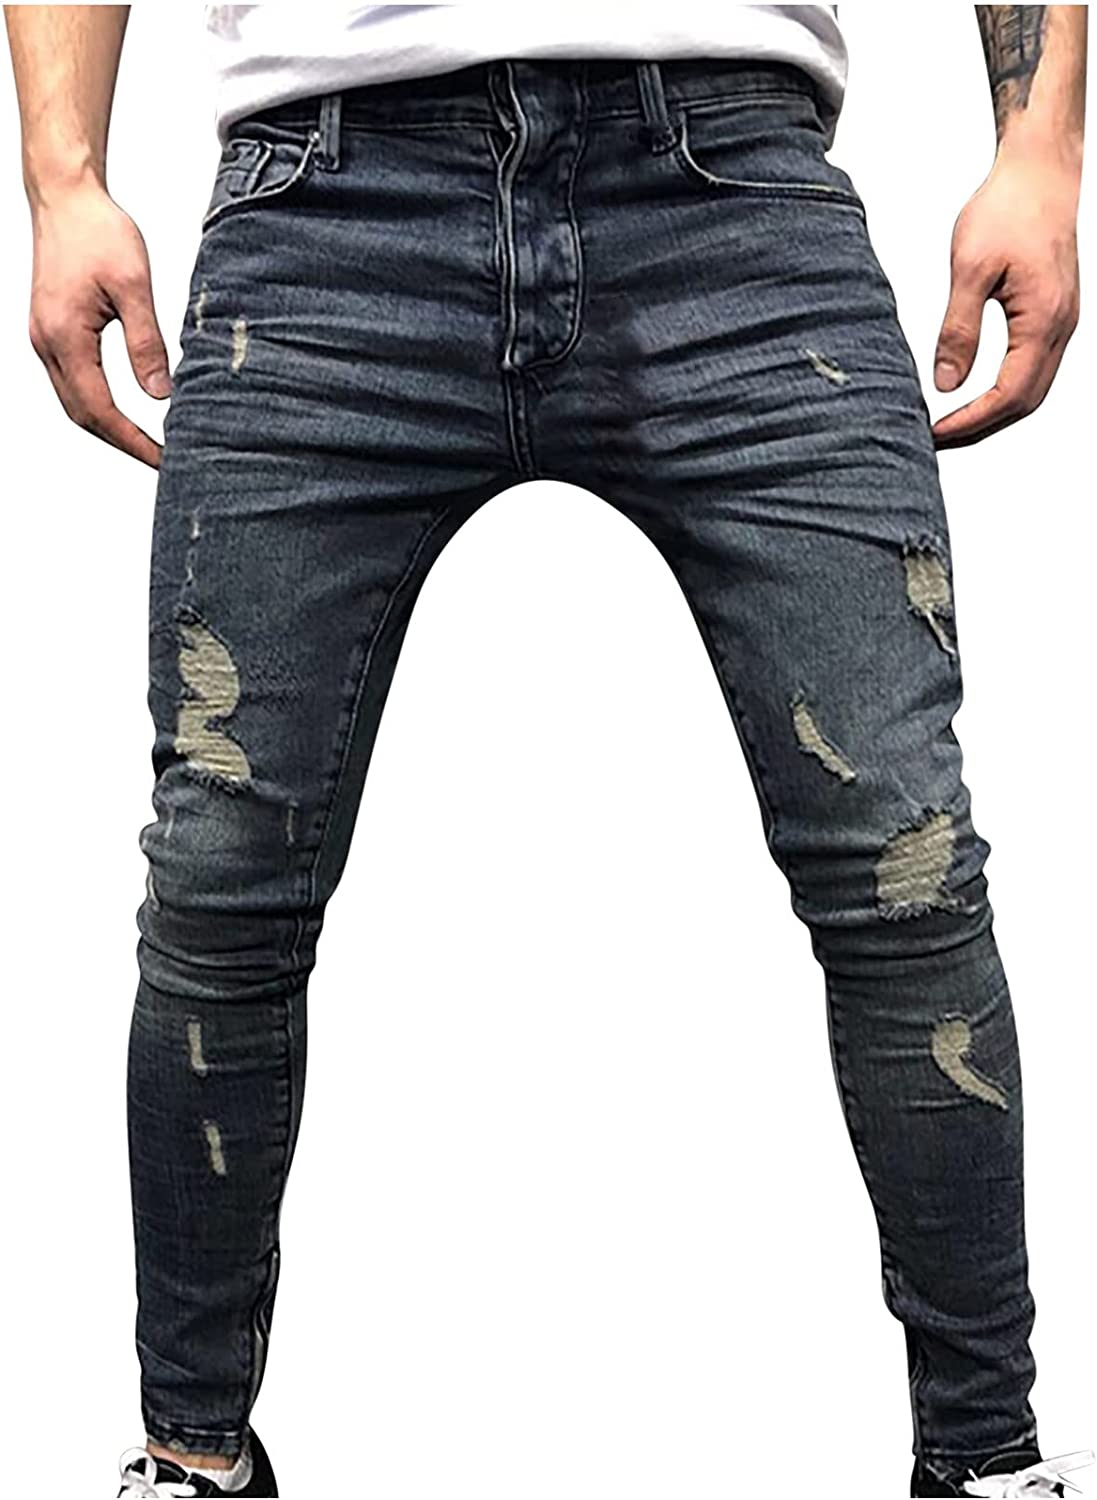 Courier shipping free shipping Homisy Ripped excellence Jeans Men Skinny Fit Stretch Ret Slim Casual